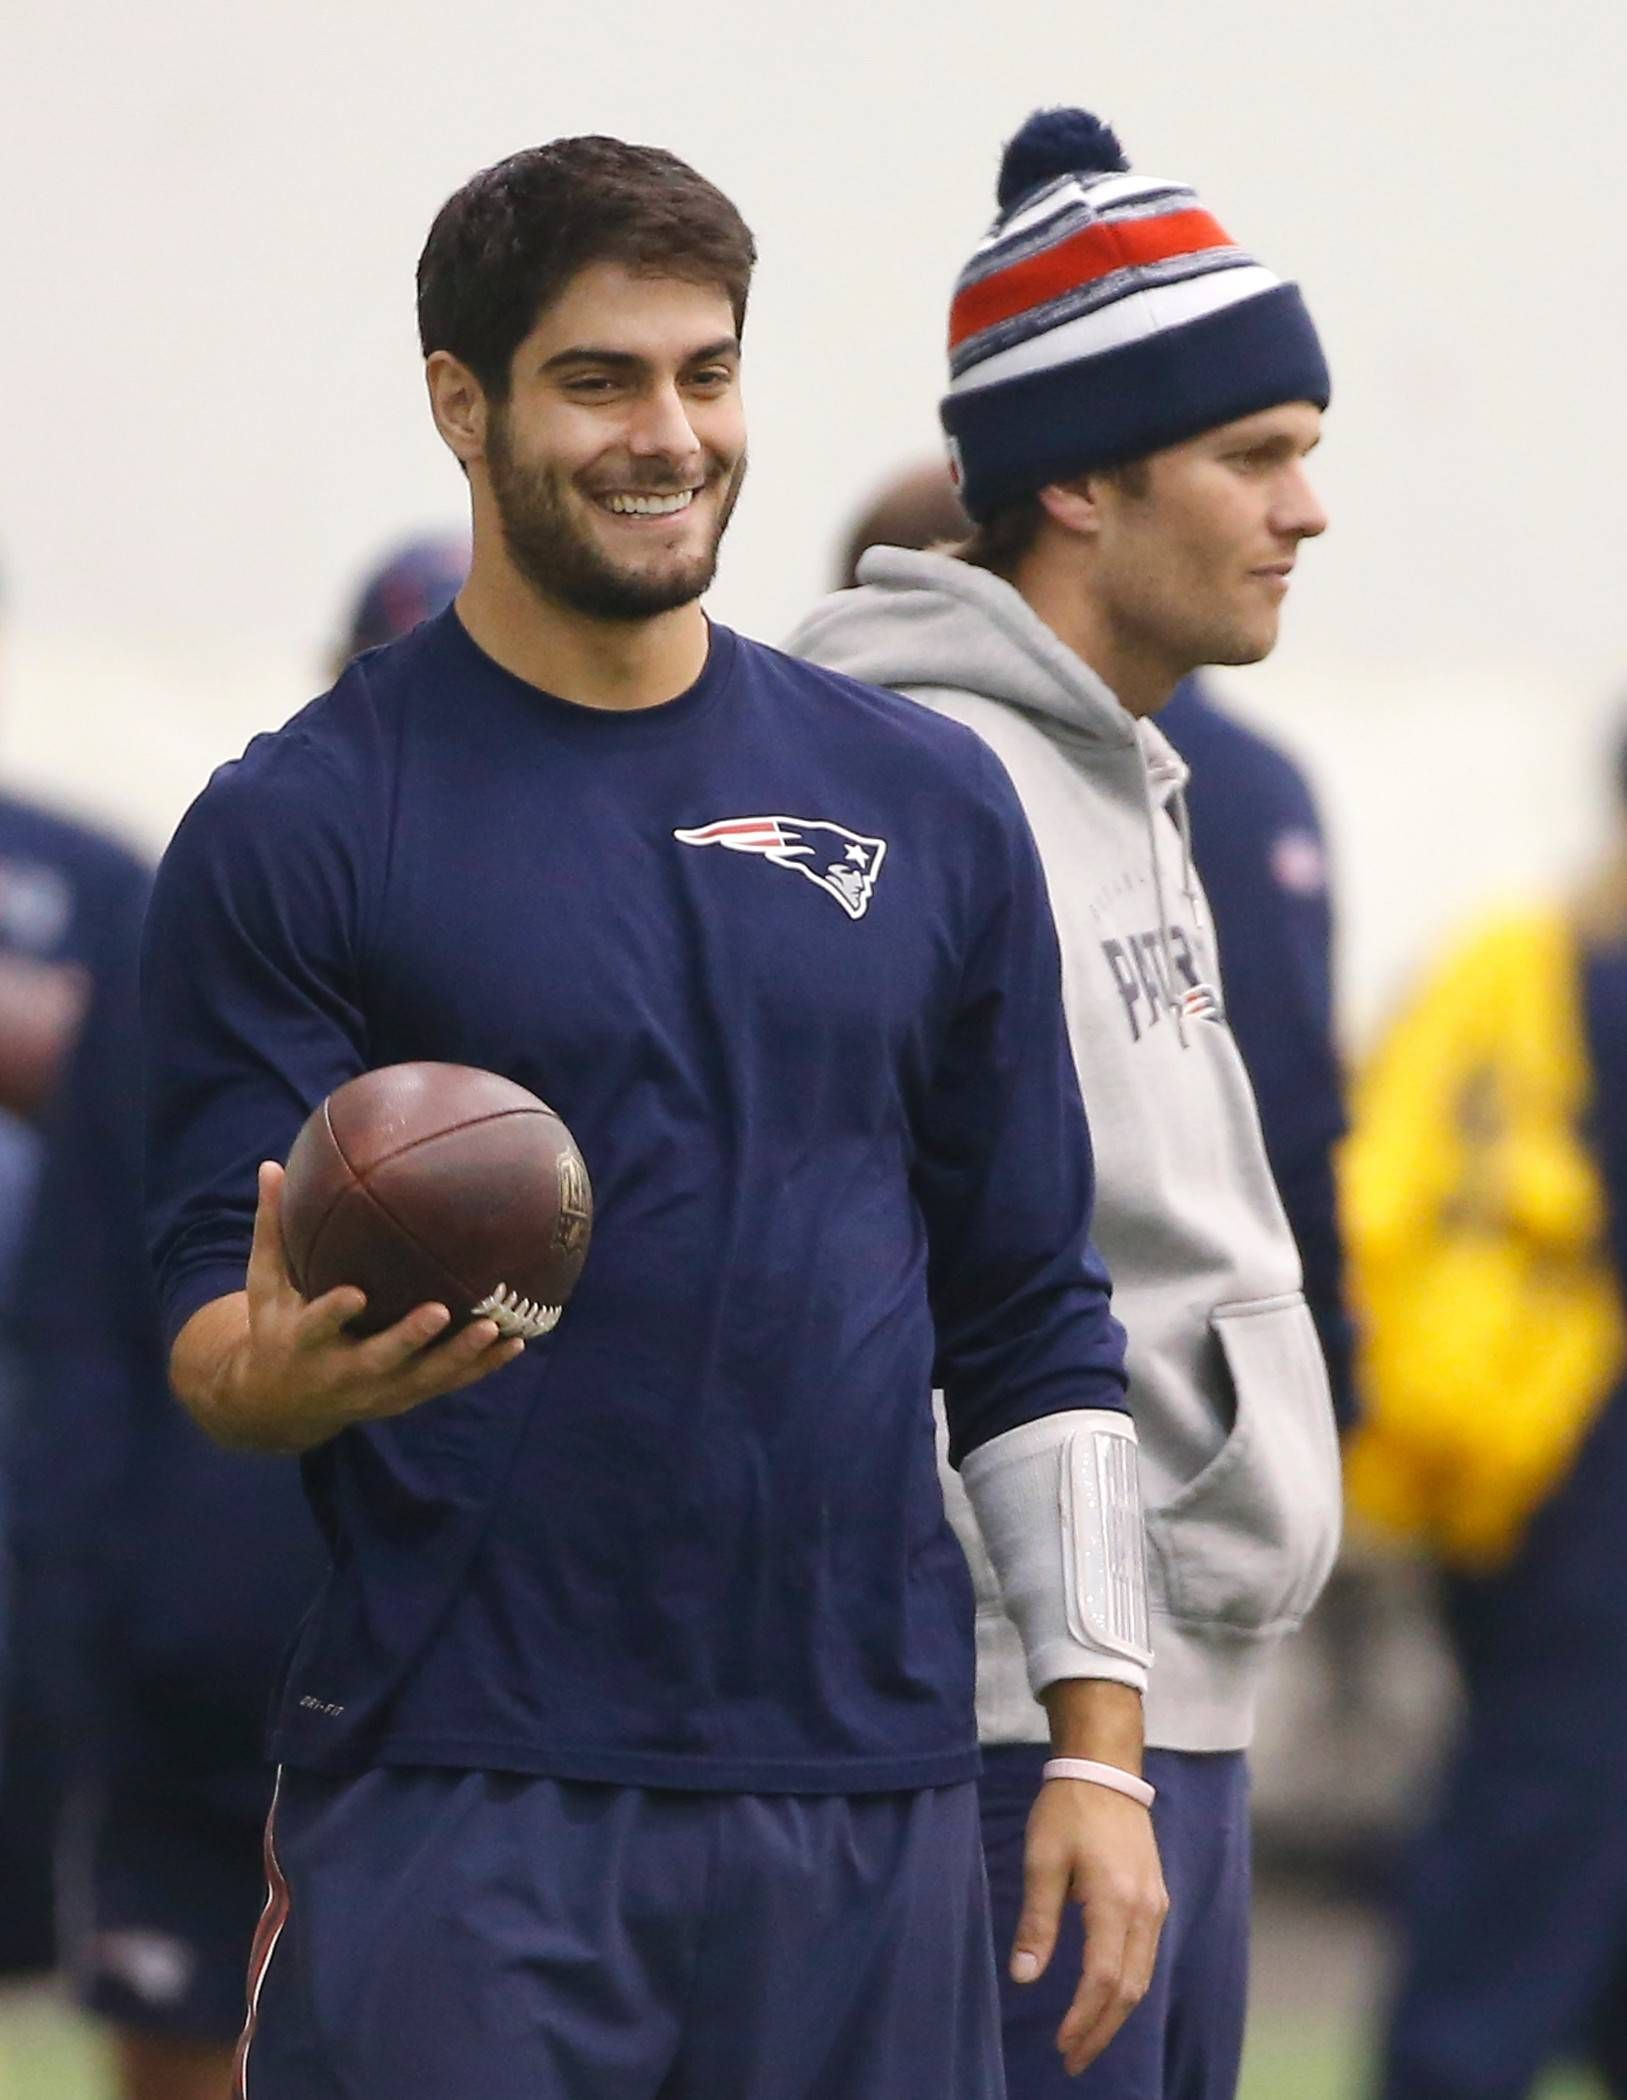 Imrem Garoppolo S Audition Might Just Be For Chicago Bears Chicago Bears Jimmy New England Patriots